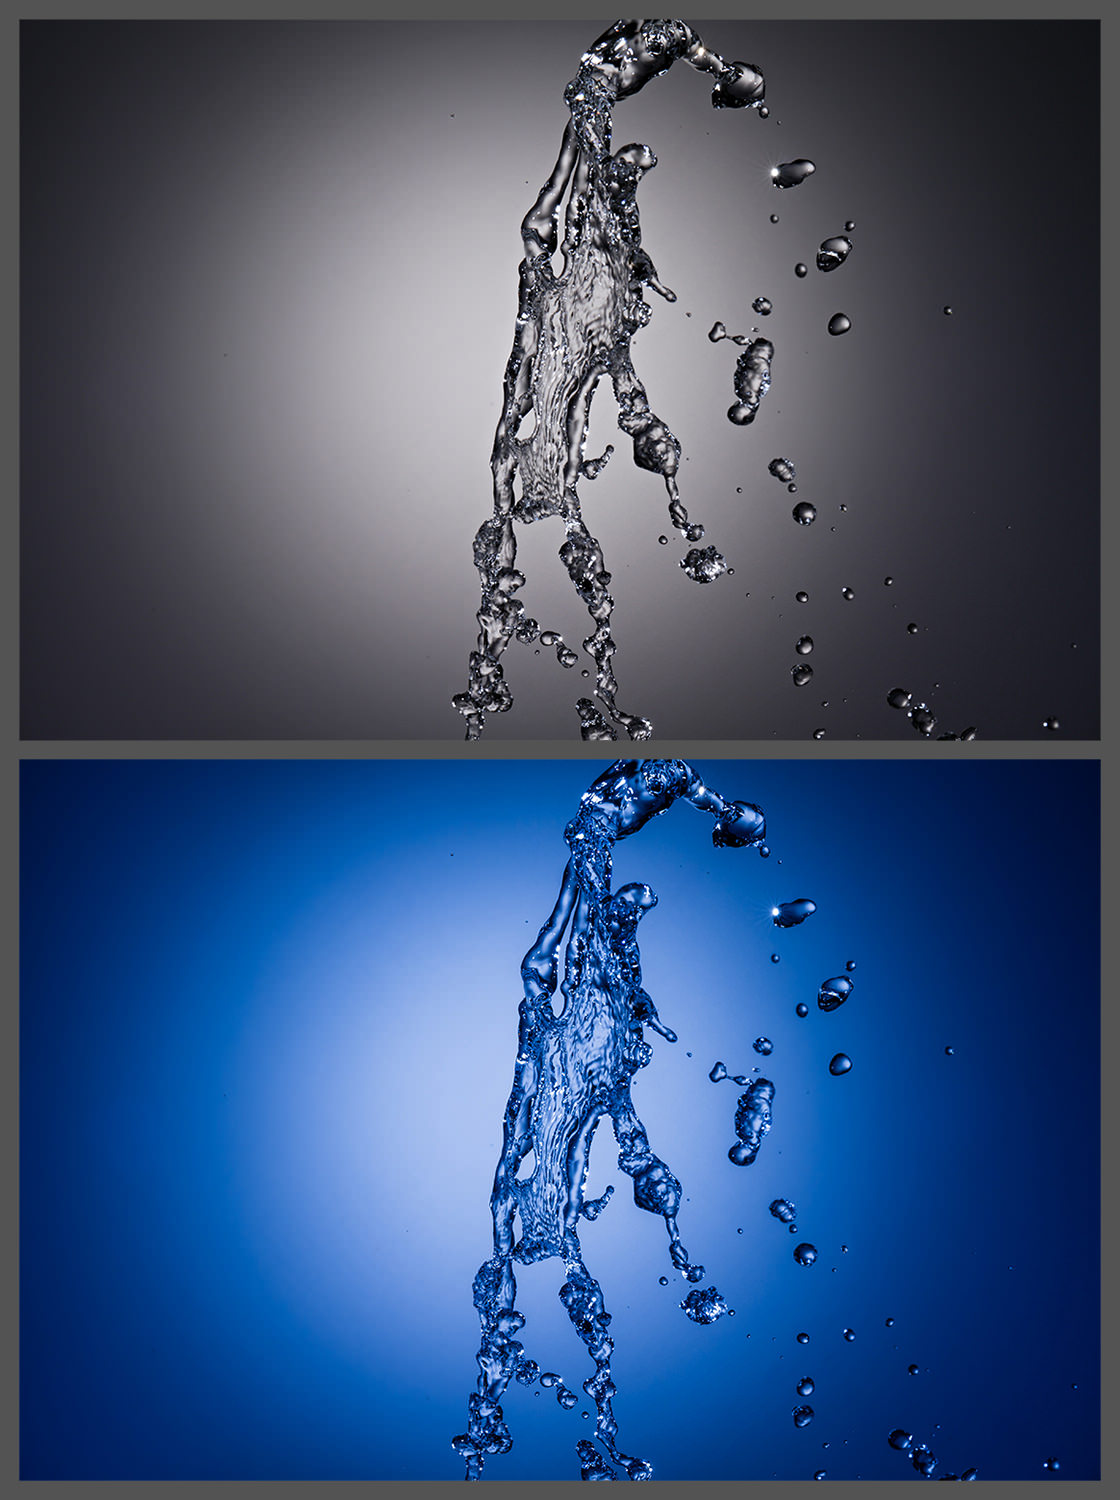 Creative Water Photography – A Step-by-Step Guide to Making Water Monsters